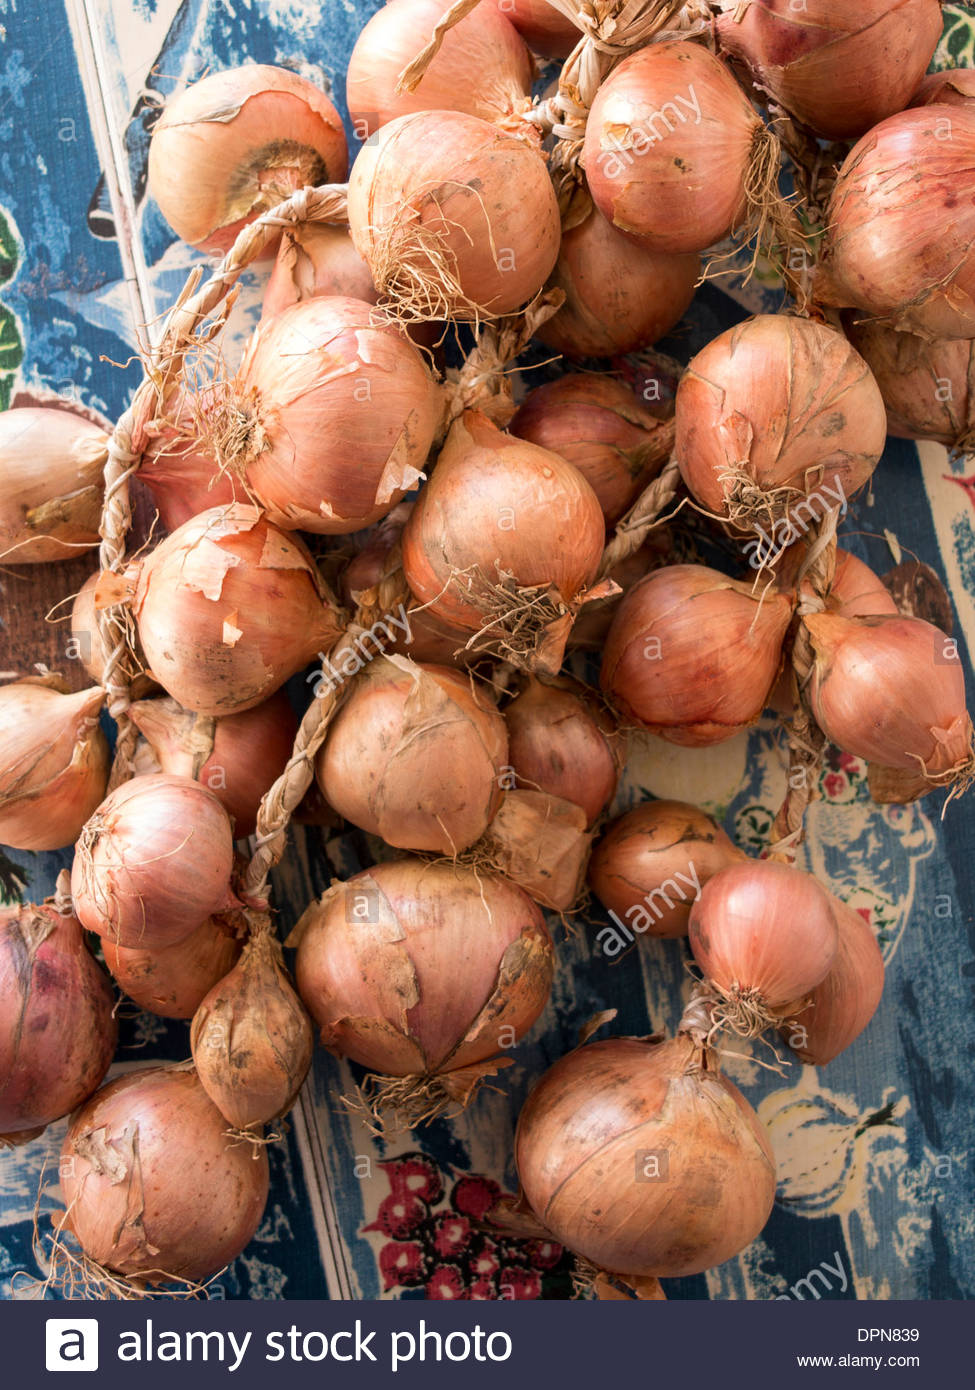 String of onions on kitchen table - Stock Image